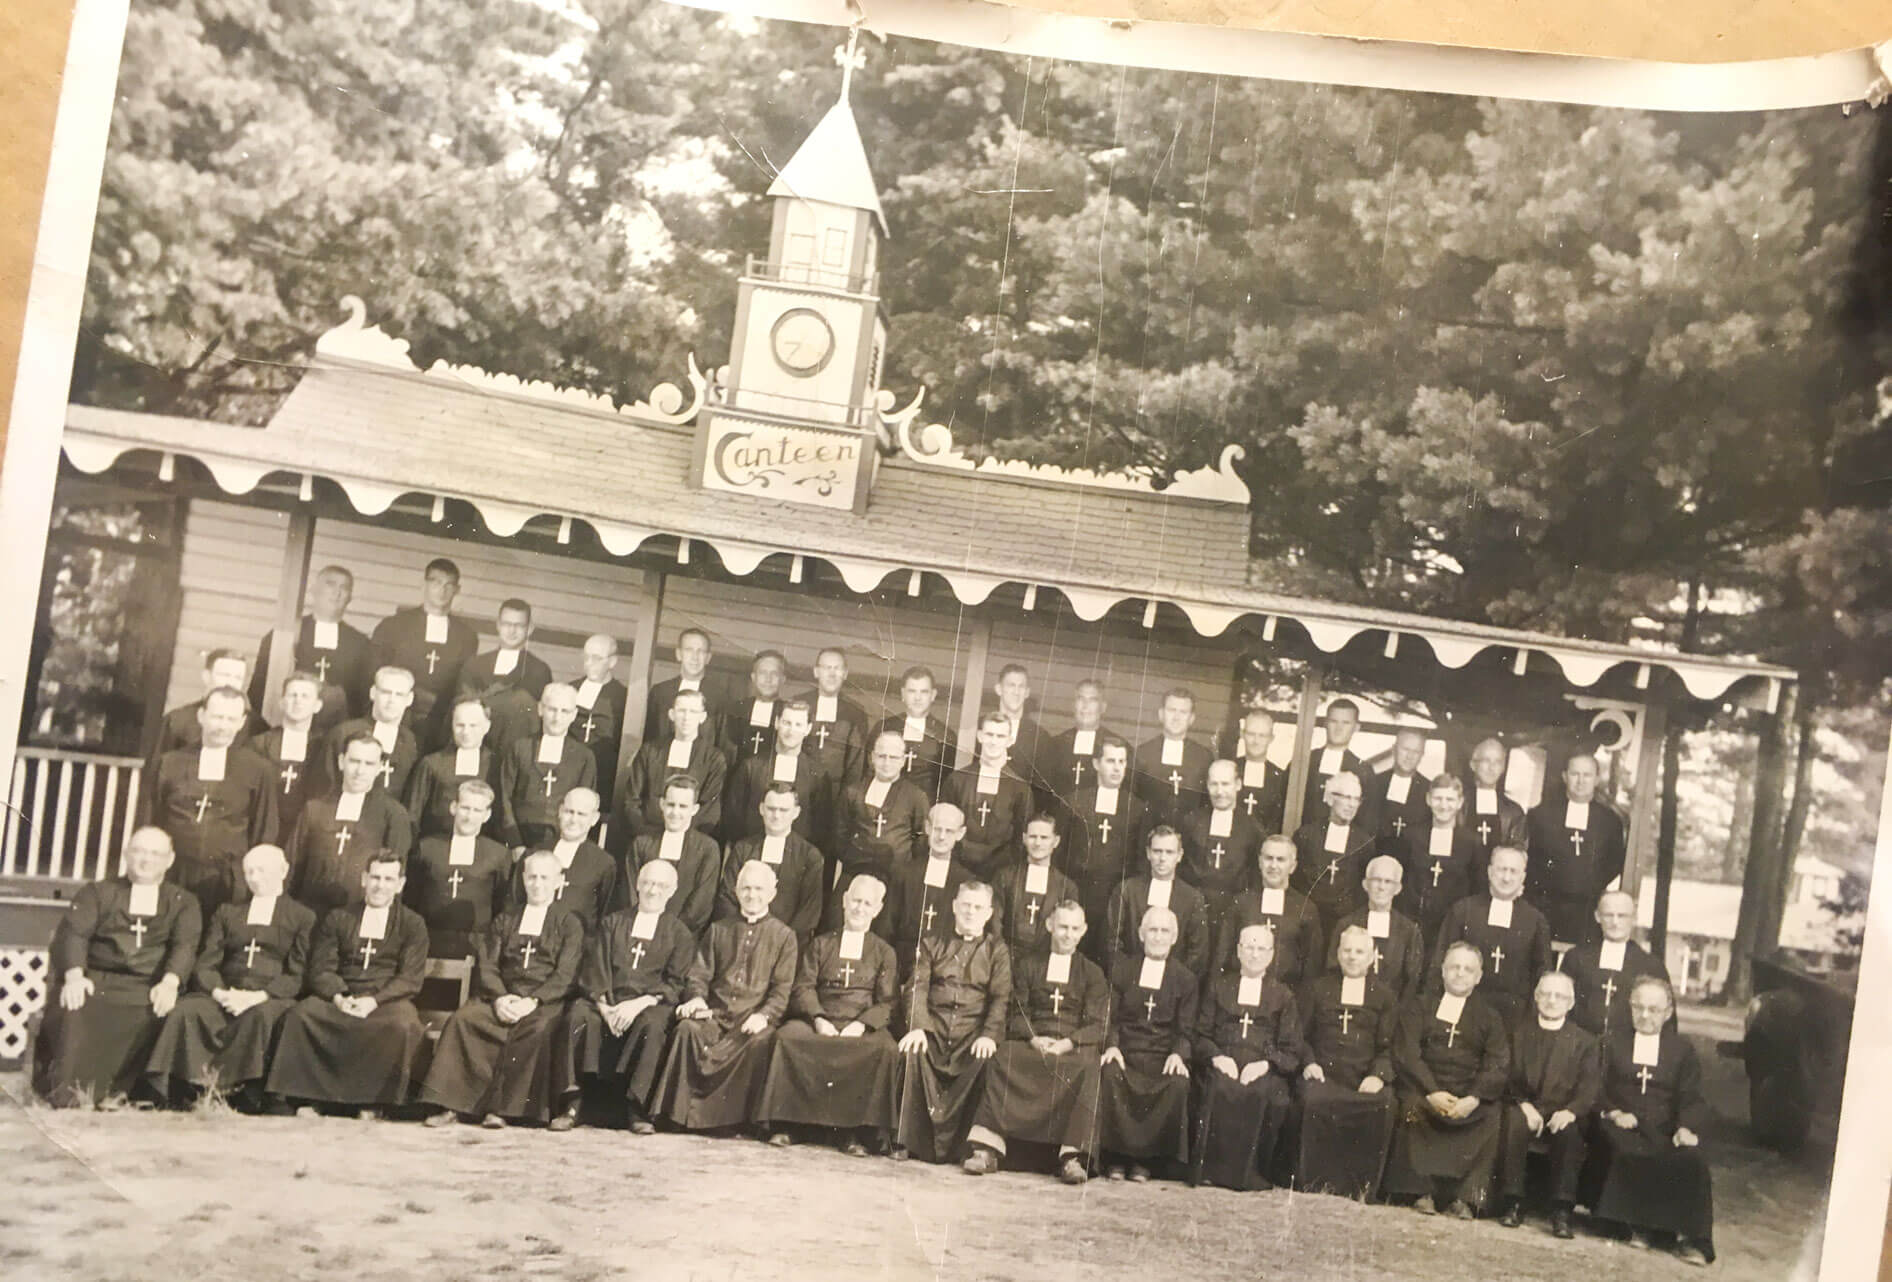 Old photo of Brothers of Camp Marist